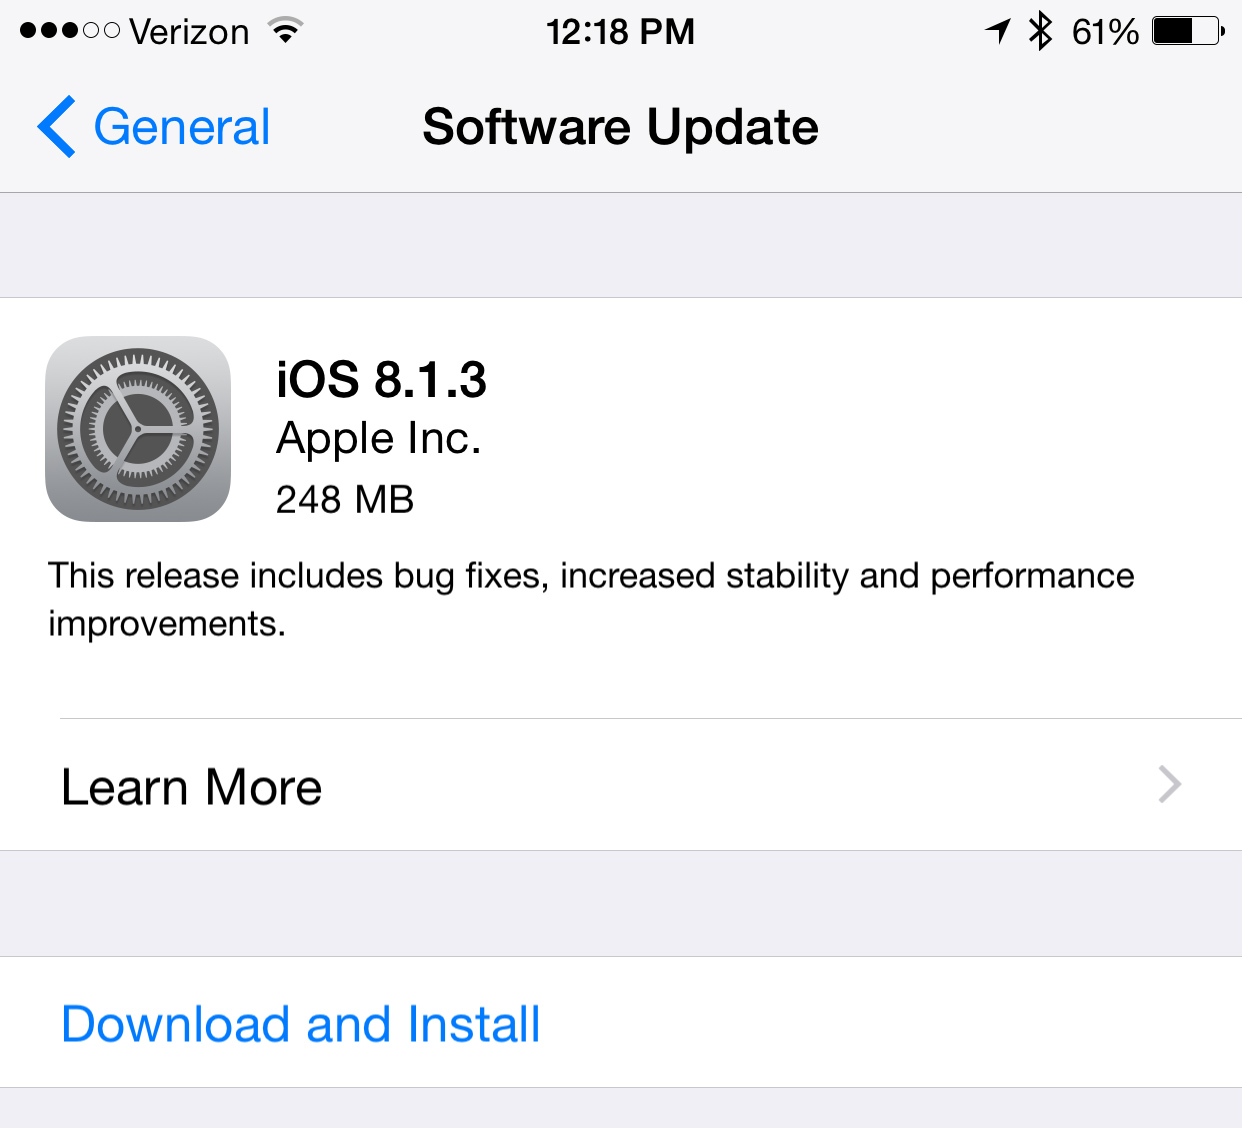 Apple's newly released iOS 8.1.3 reduces the amount of storage required to update